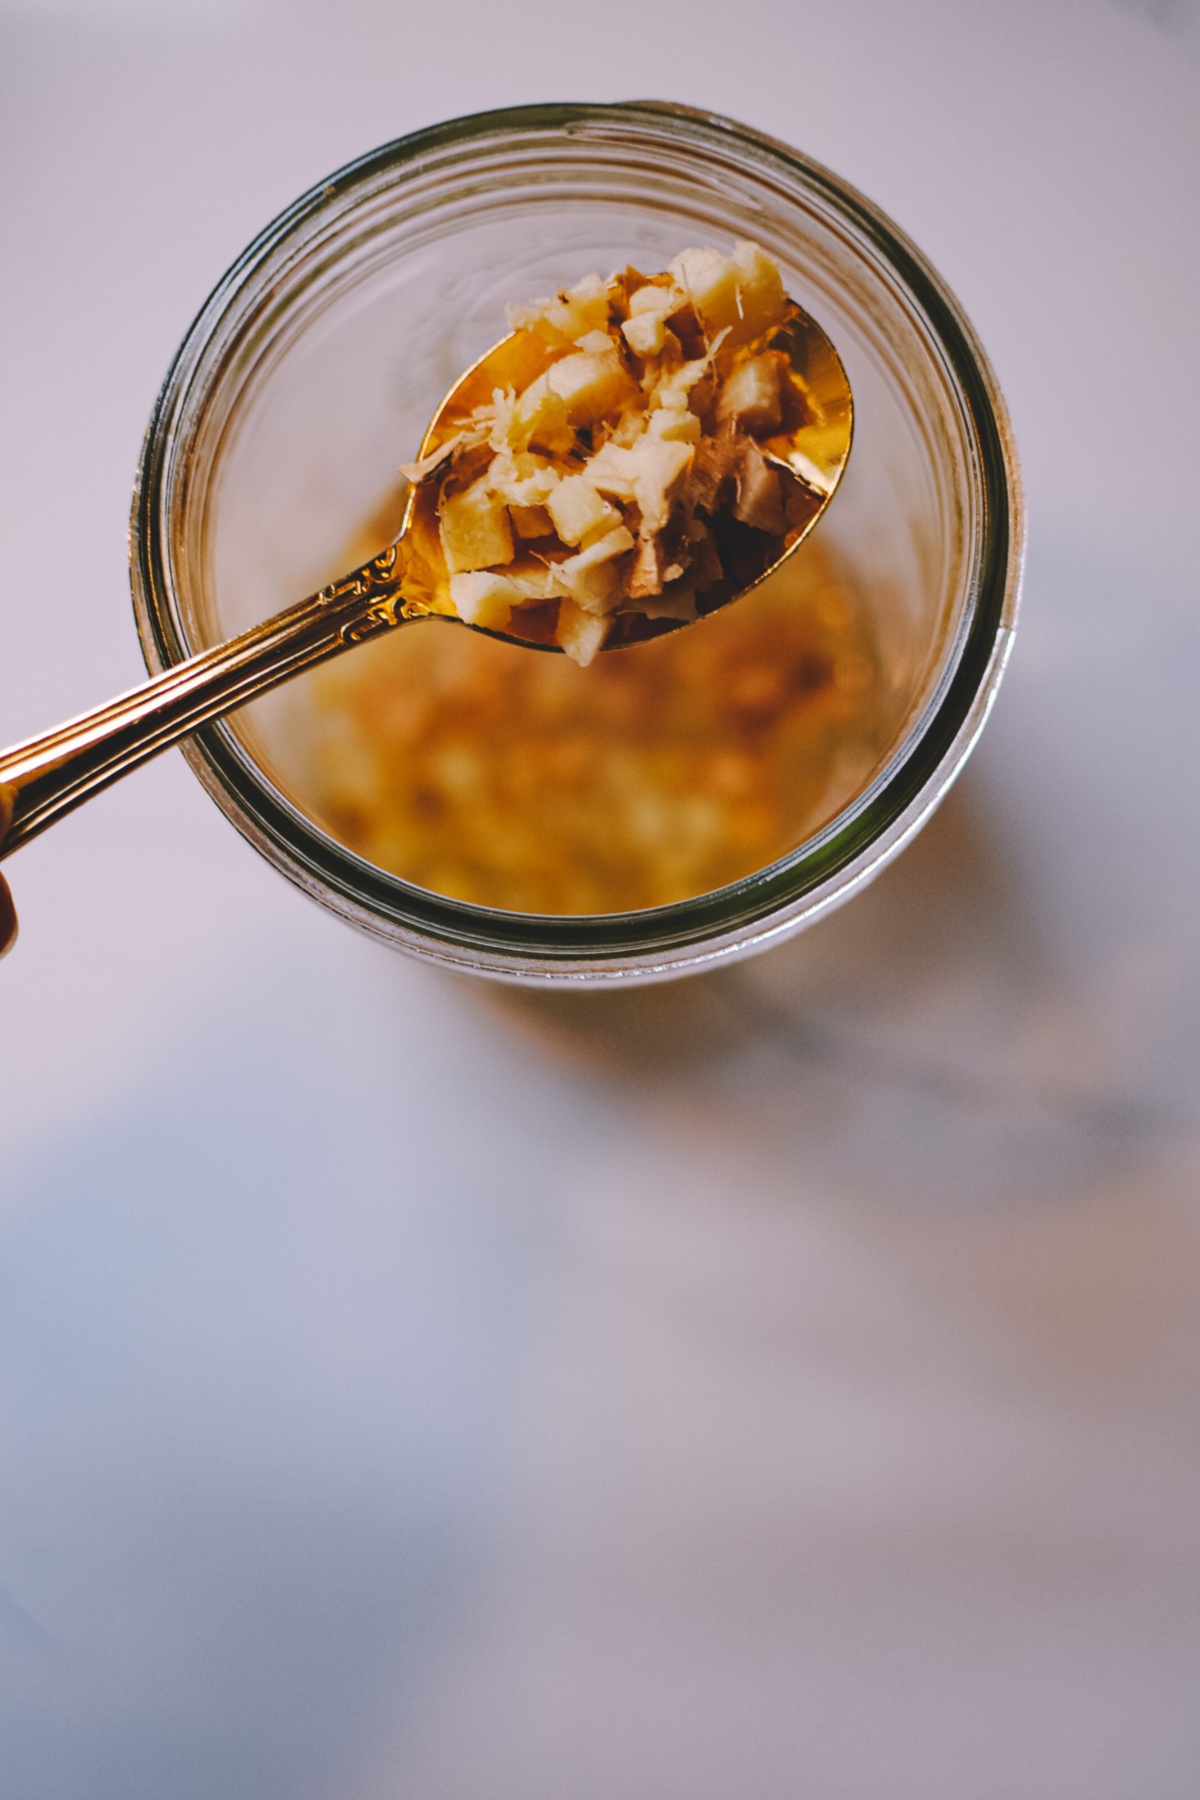 ginger bug on a spoon